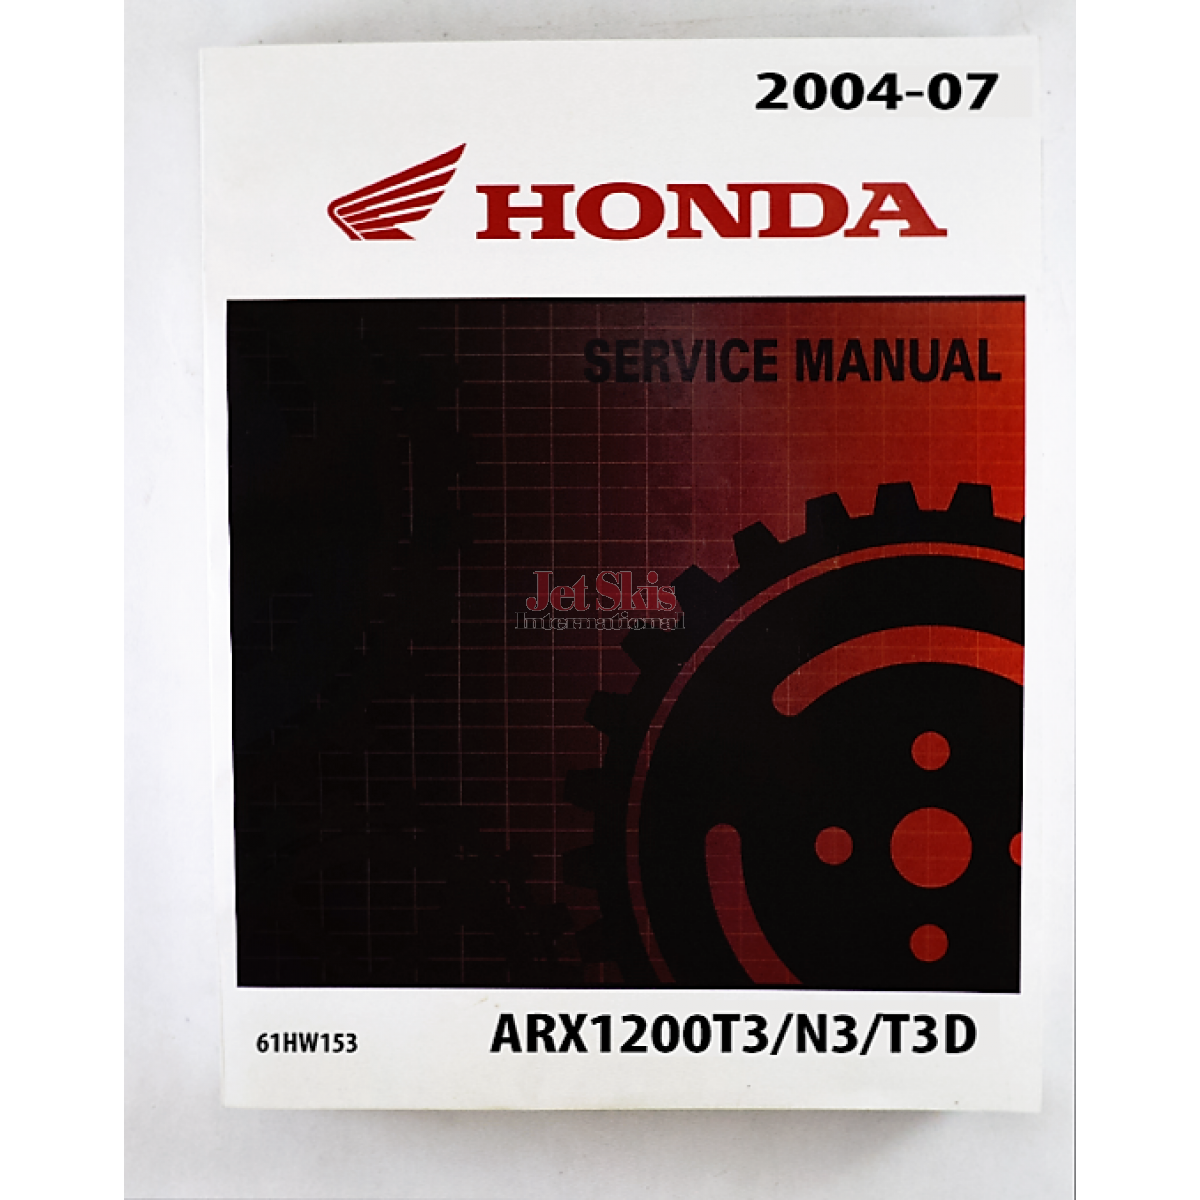 honda aquatrax f12 f12x service and shop manual 61hw101 jet skis rh jetskisint com Honda Aquatrax F 12 Honda Aquatrax Maintenance